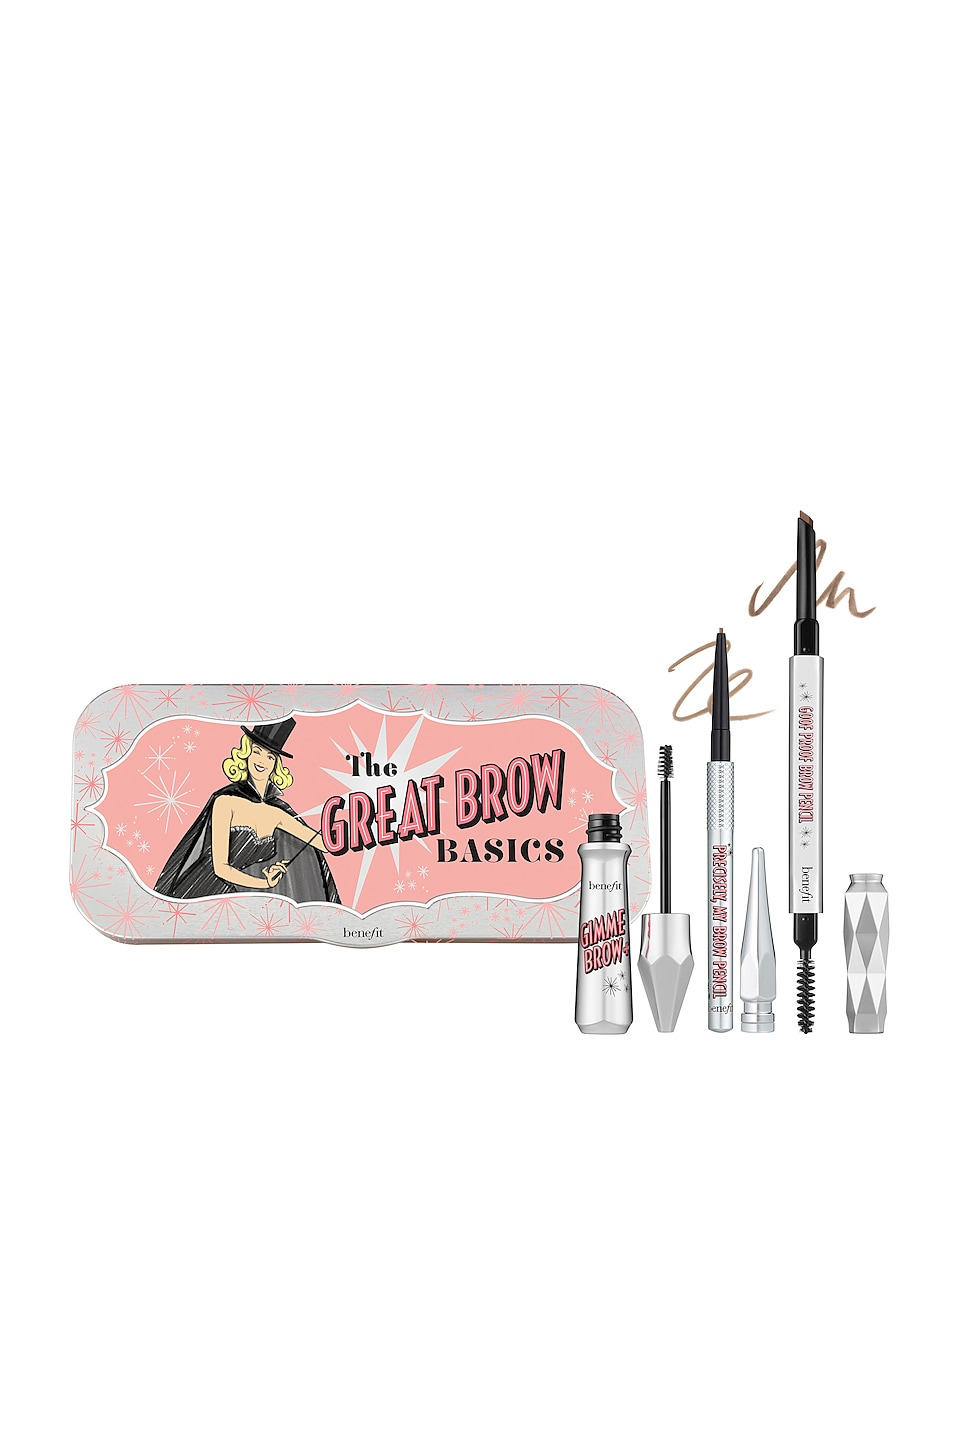 Benefit Cosmetics The Great Brow Basics in 02 Warm Golden Blonde